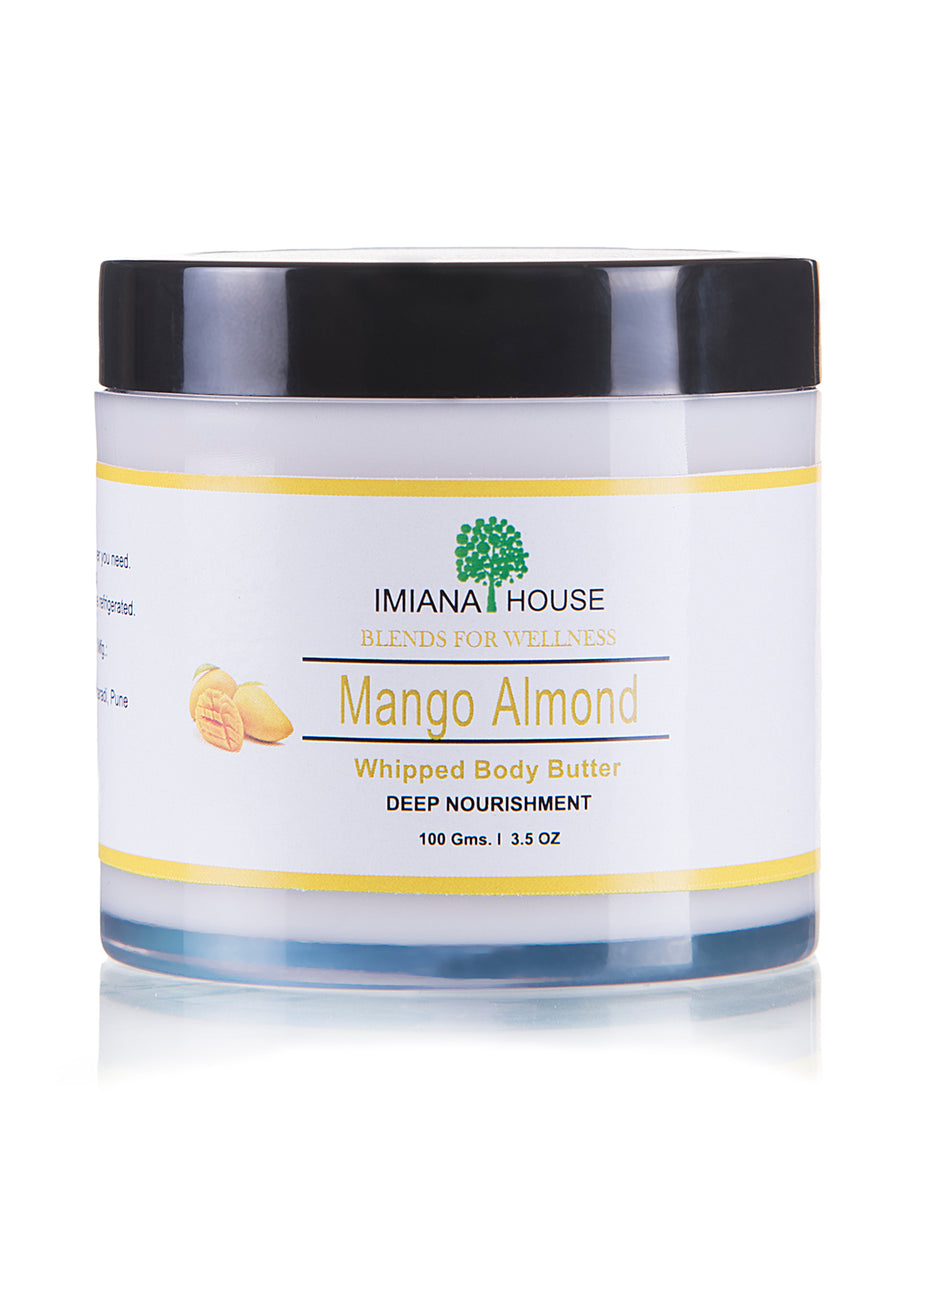 IMIANA HOUSE Mango Almond Body Butter, Body Care, IMIANA HOUSE, ihaat, [made_in_india], [handmade] - ihaat